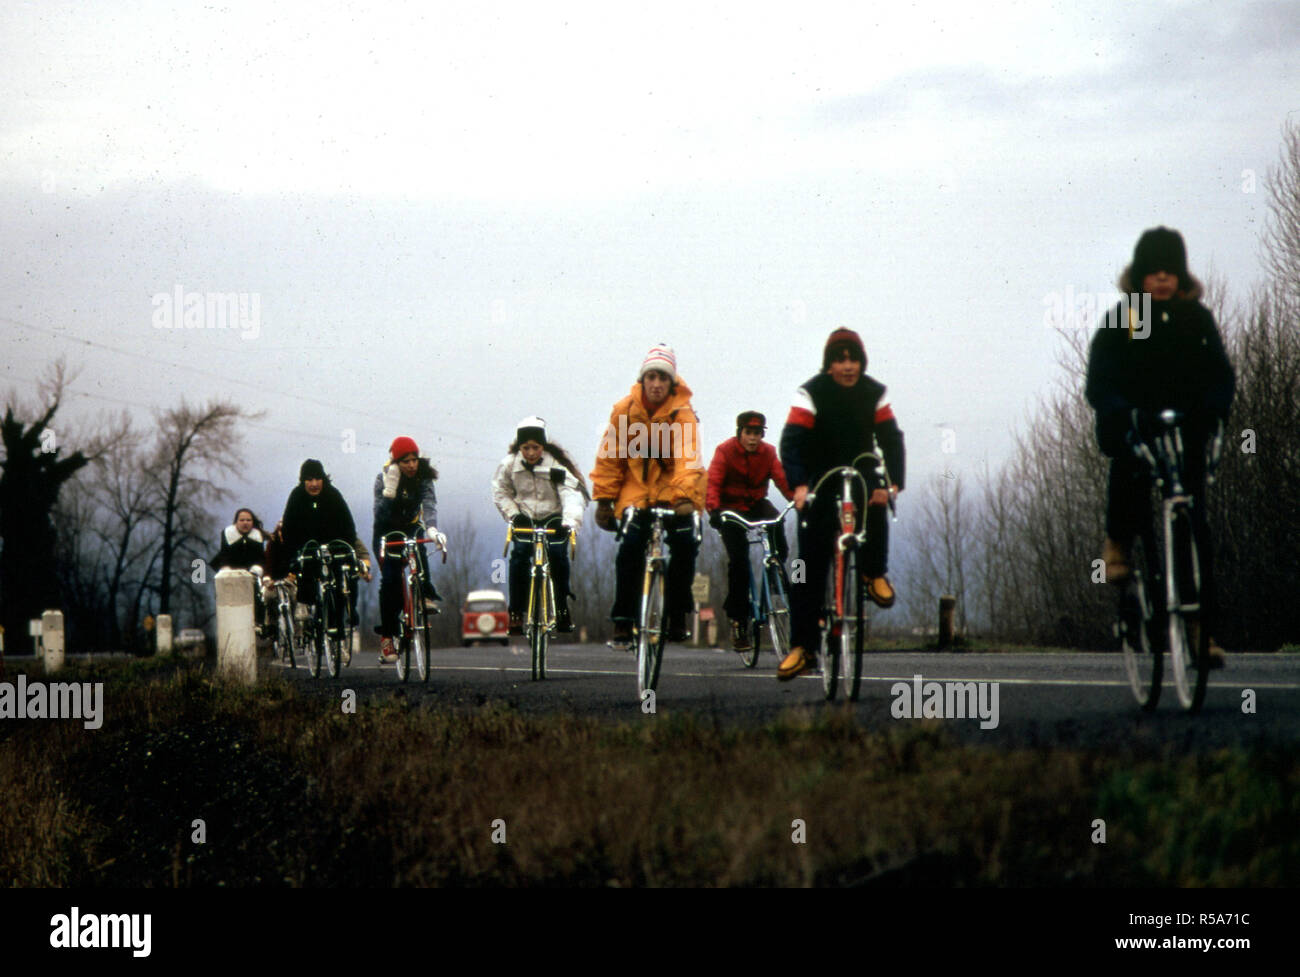 1974 Portland Area - School Children, Were Forced to Use Their Bicycles on Field Trips During the Fuel Crisis in the Winter of 1974. There Was Not Enough Gasoline for School Buses to Be Used for Extracurricular Activities, Even During Dark and Rainy Weather 02/1974 Stock Photo